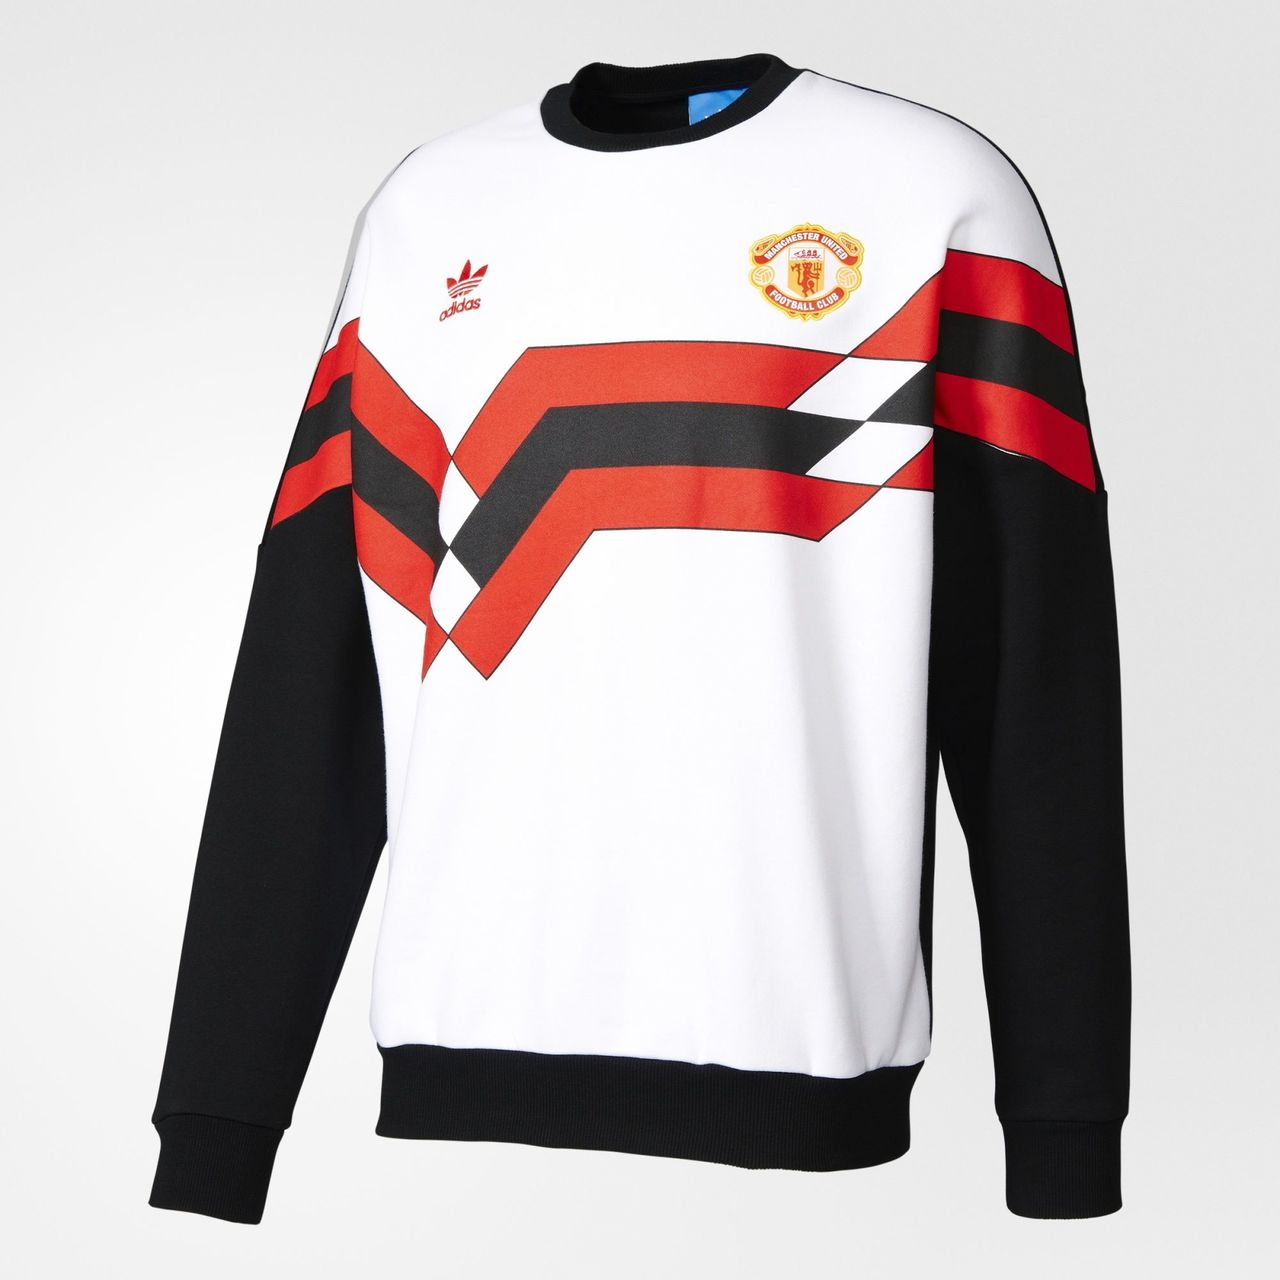 Design t shirt manchester united - Adidas Originals Manchester United Fc 1988 Crew Sweatshirt Black White